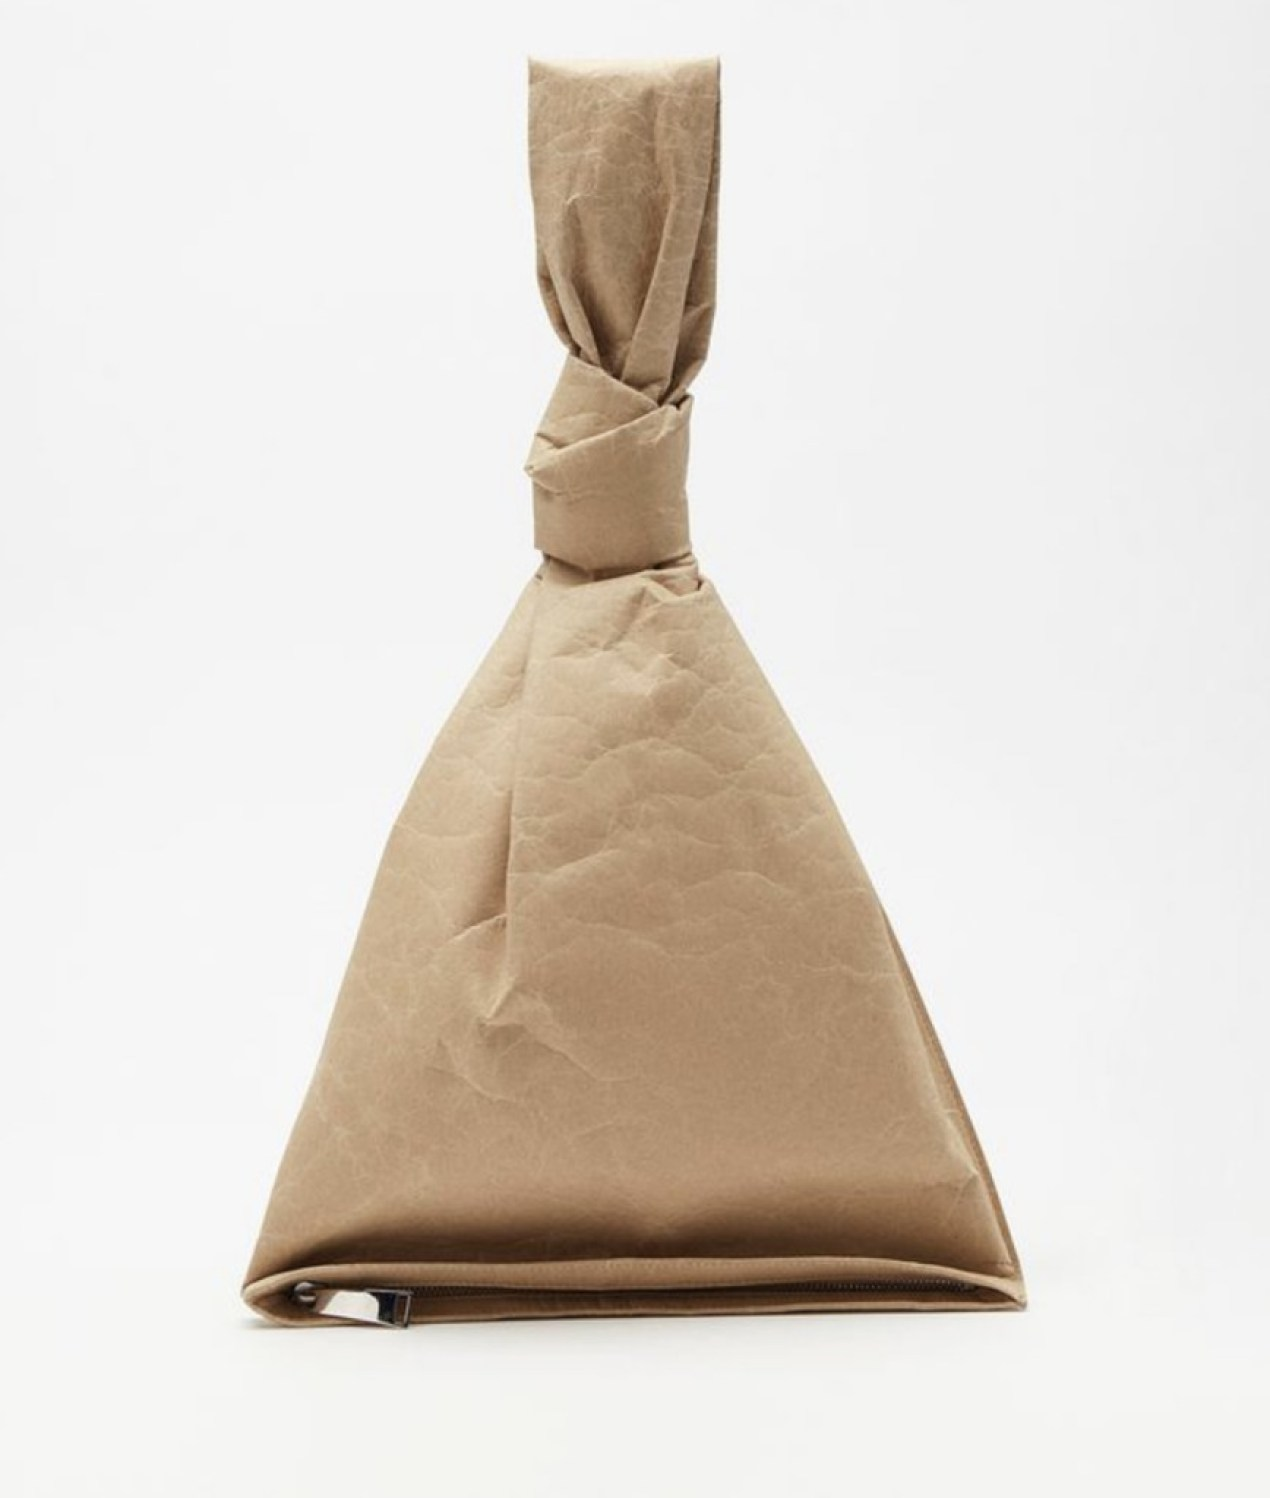 Bottega Venetta paper bag collection